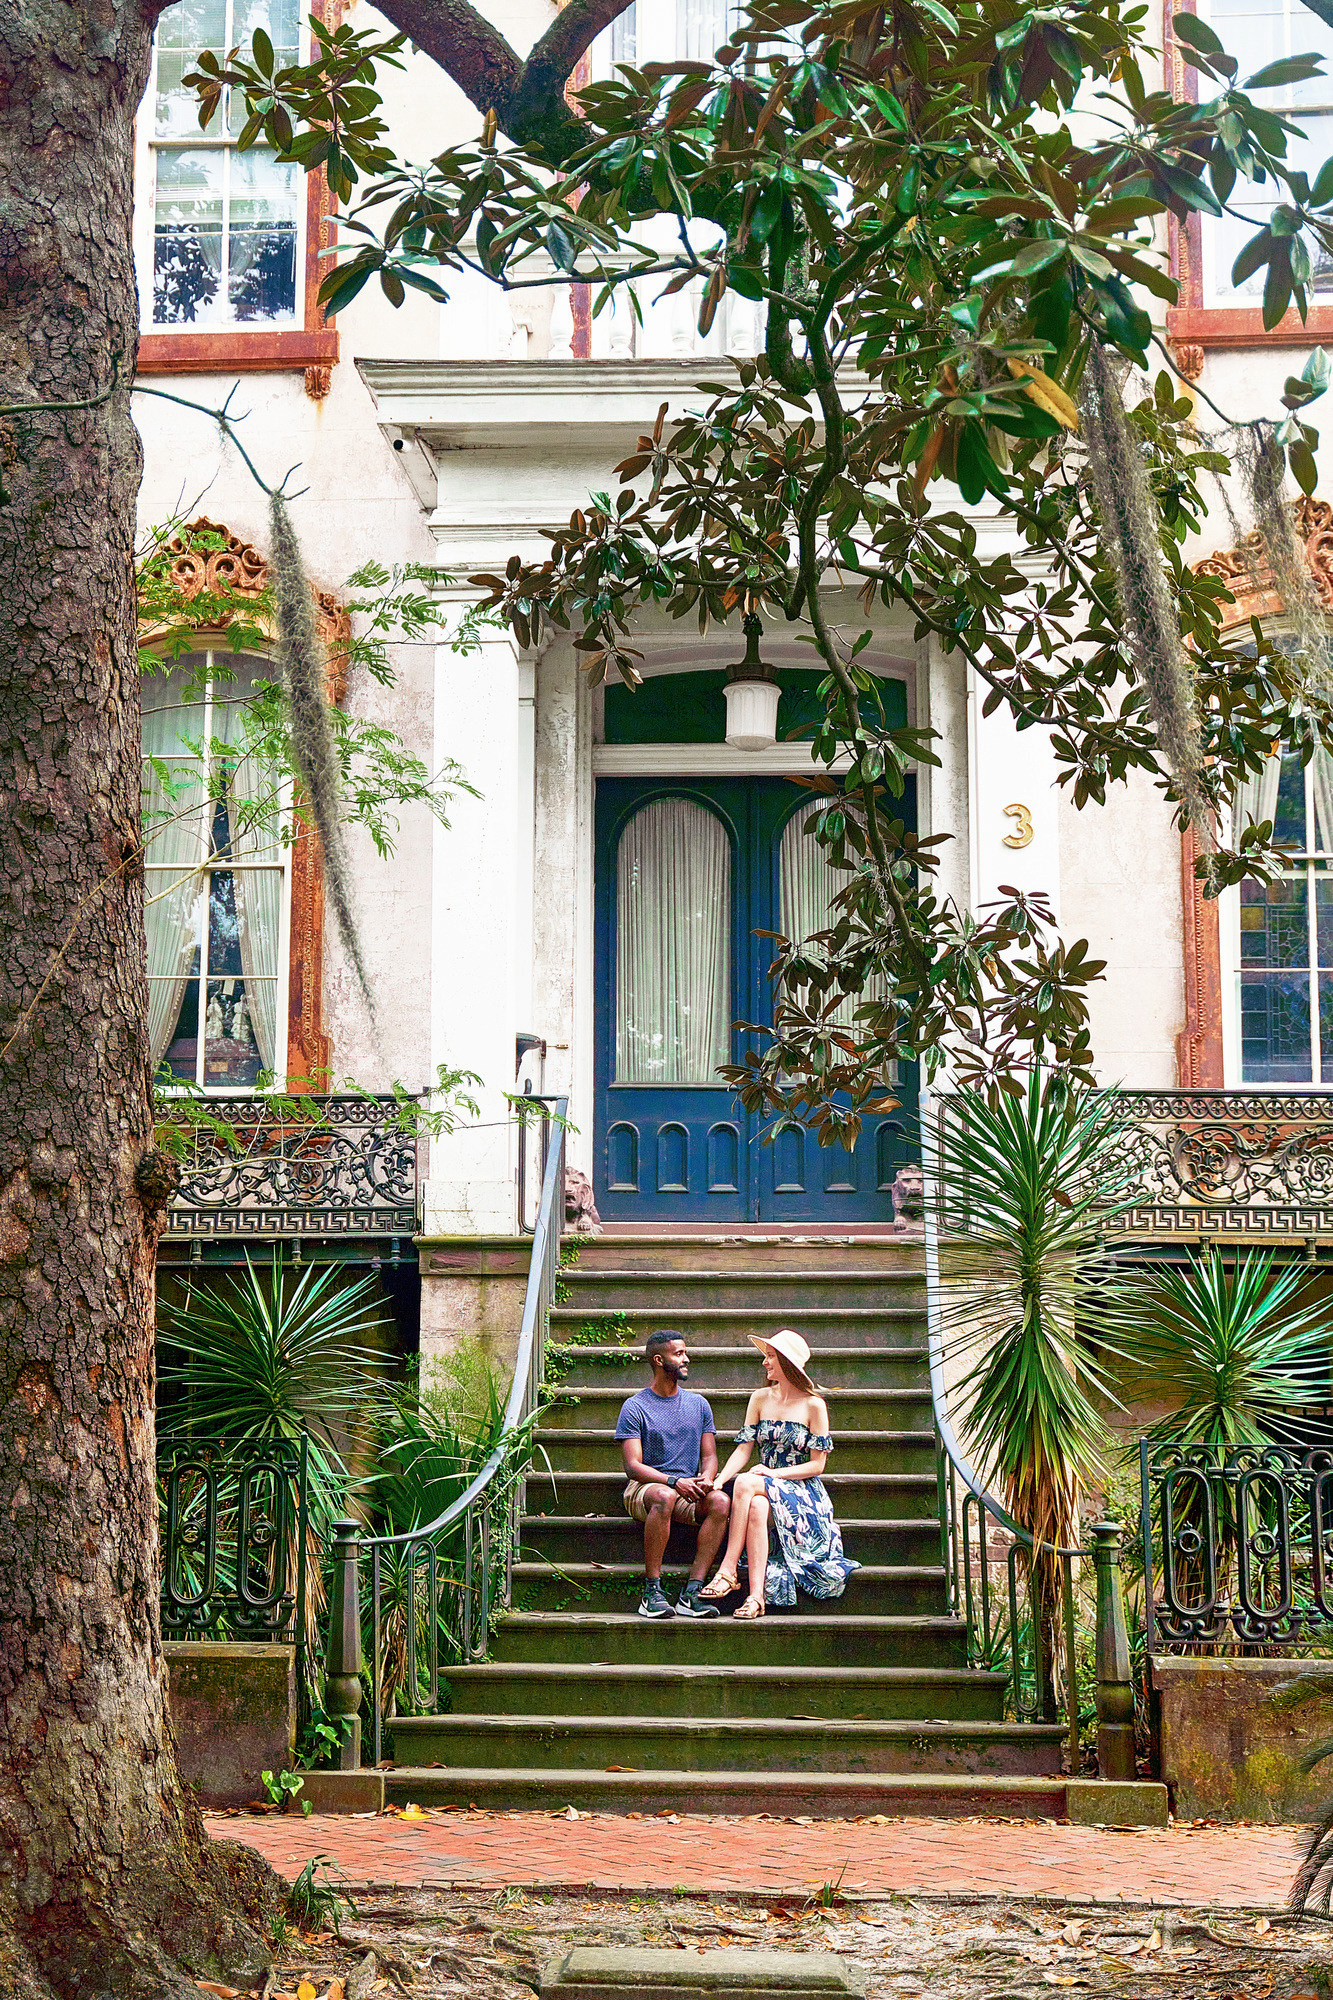 A couple sitting on the stone steps in front of the Alex Raskin Antique store in Savannah Georgia. The steps are surrounded by greenery and lead to double doors with large windows that are painted blue. The building is old and painted white with rust colored trim. The woman in the couple is wearing a blue floral sundress with a sunhat. The man in the couple is wearing a blue shirt and khaki shorts. They are facing each other on the steps and holding hands. A haunted and cool building you perfect for Savannah photo spots